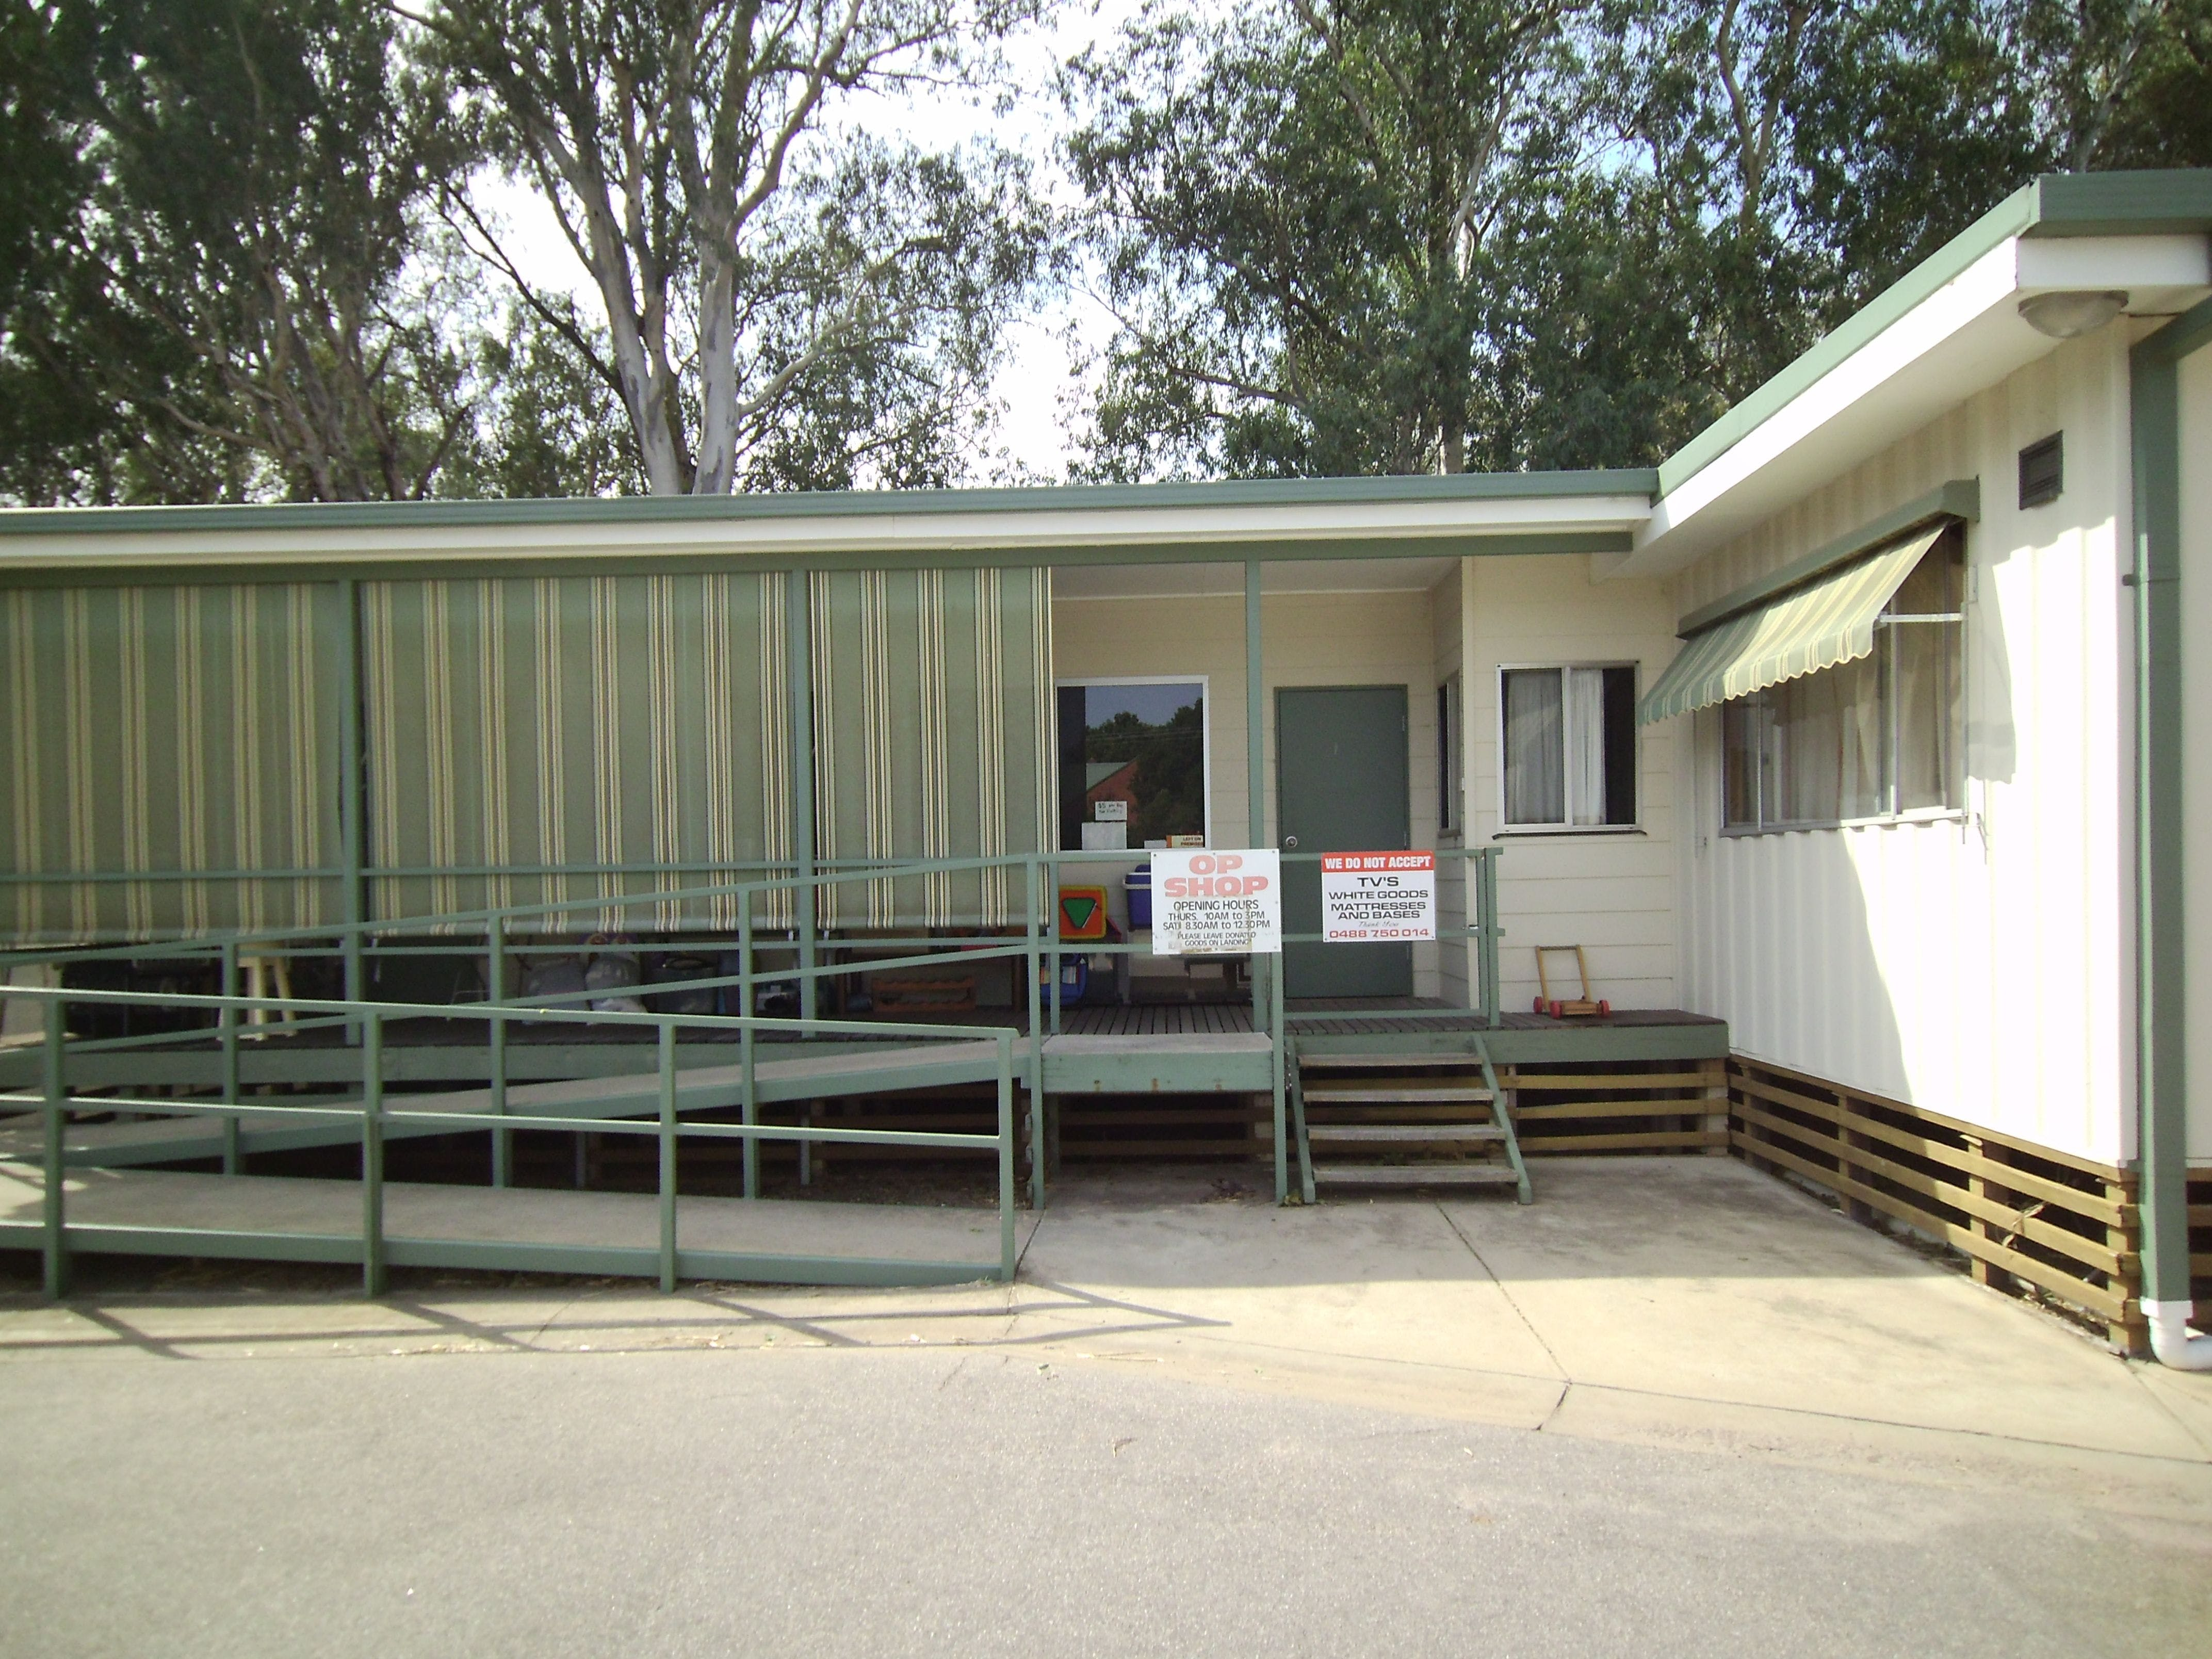 Lutheran Church Opportunity Shop - Accommodation Search